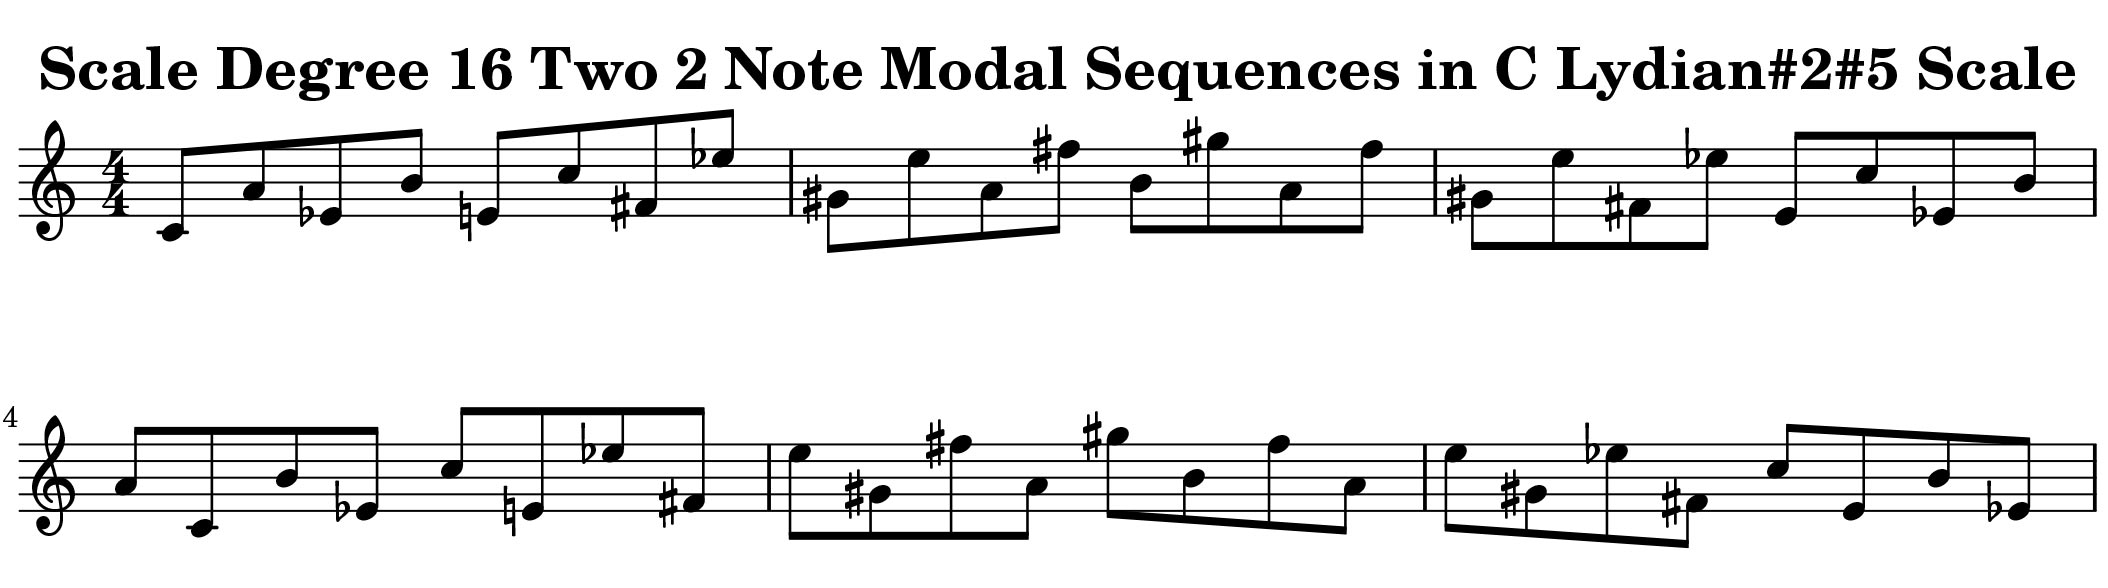 C Lydian #2#5 Scale Modal Sequencing 2 Note Group 3 for all instrumentalist by Bruce Arnold for Muse Eek Publishing Company